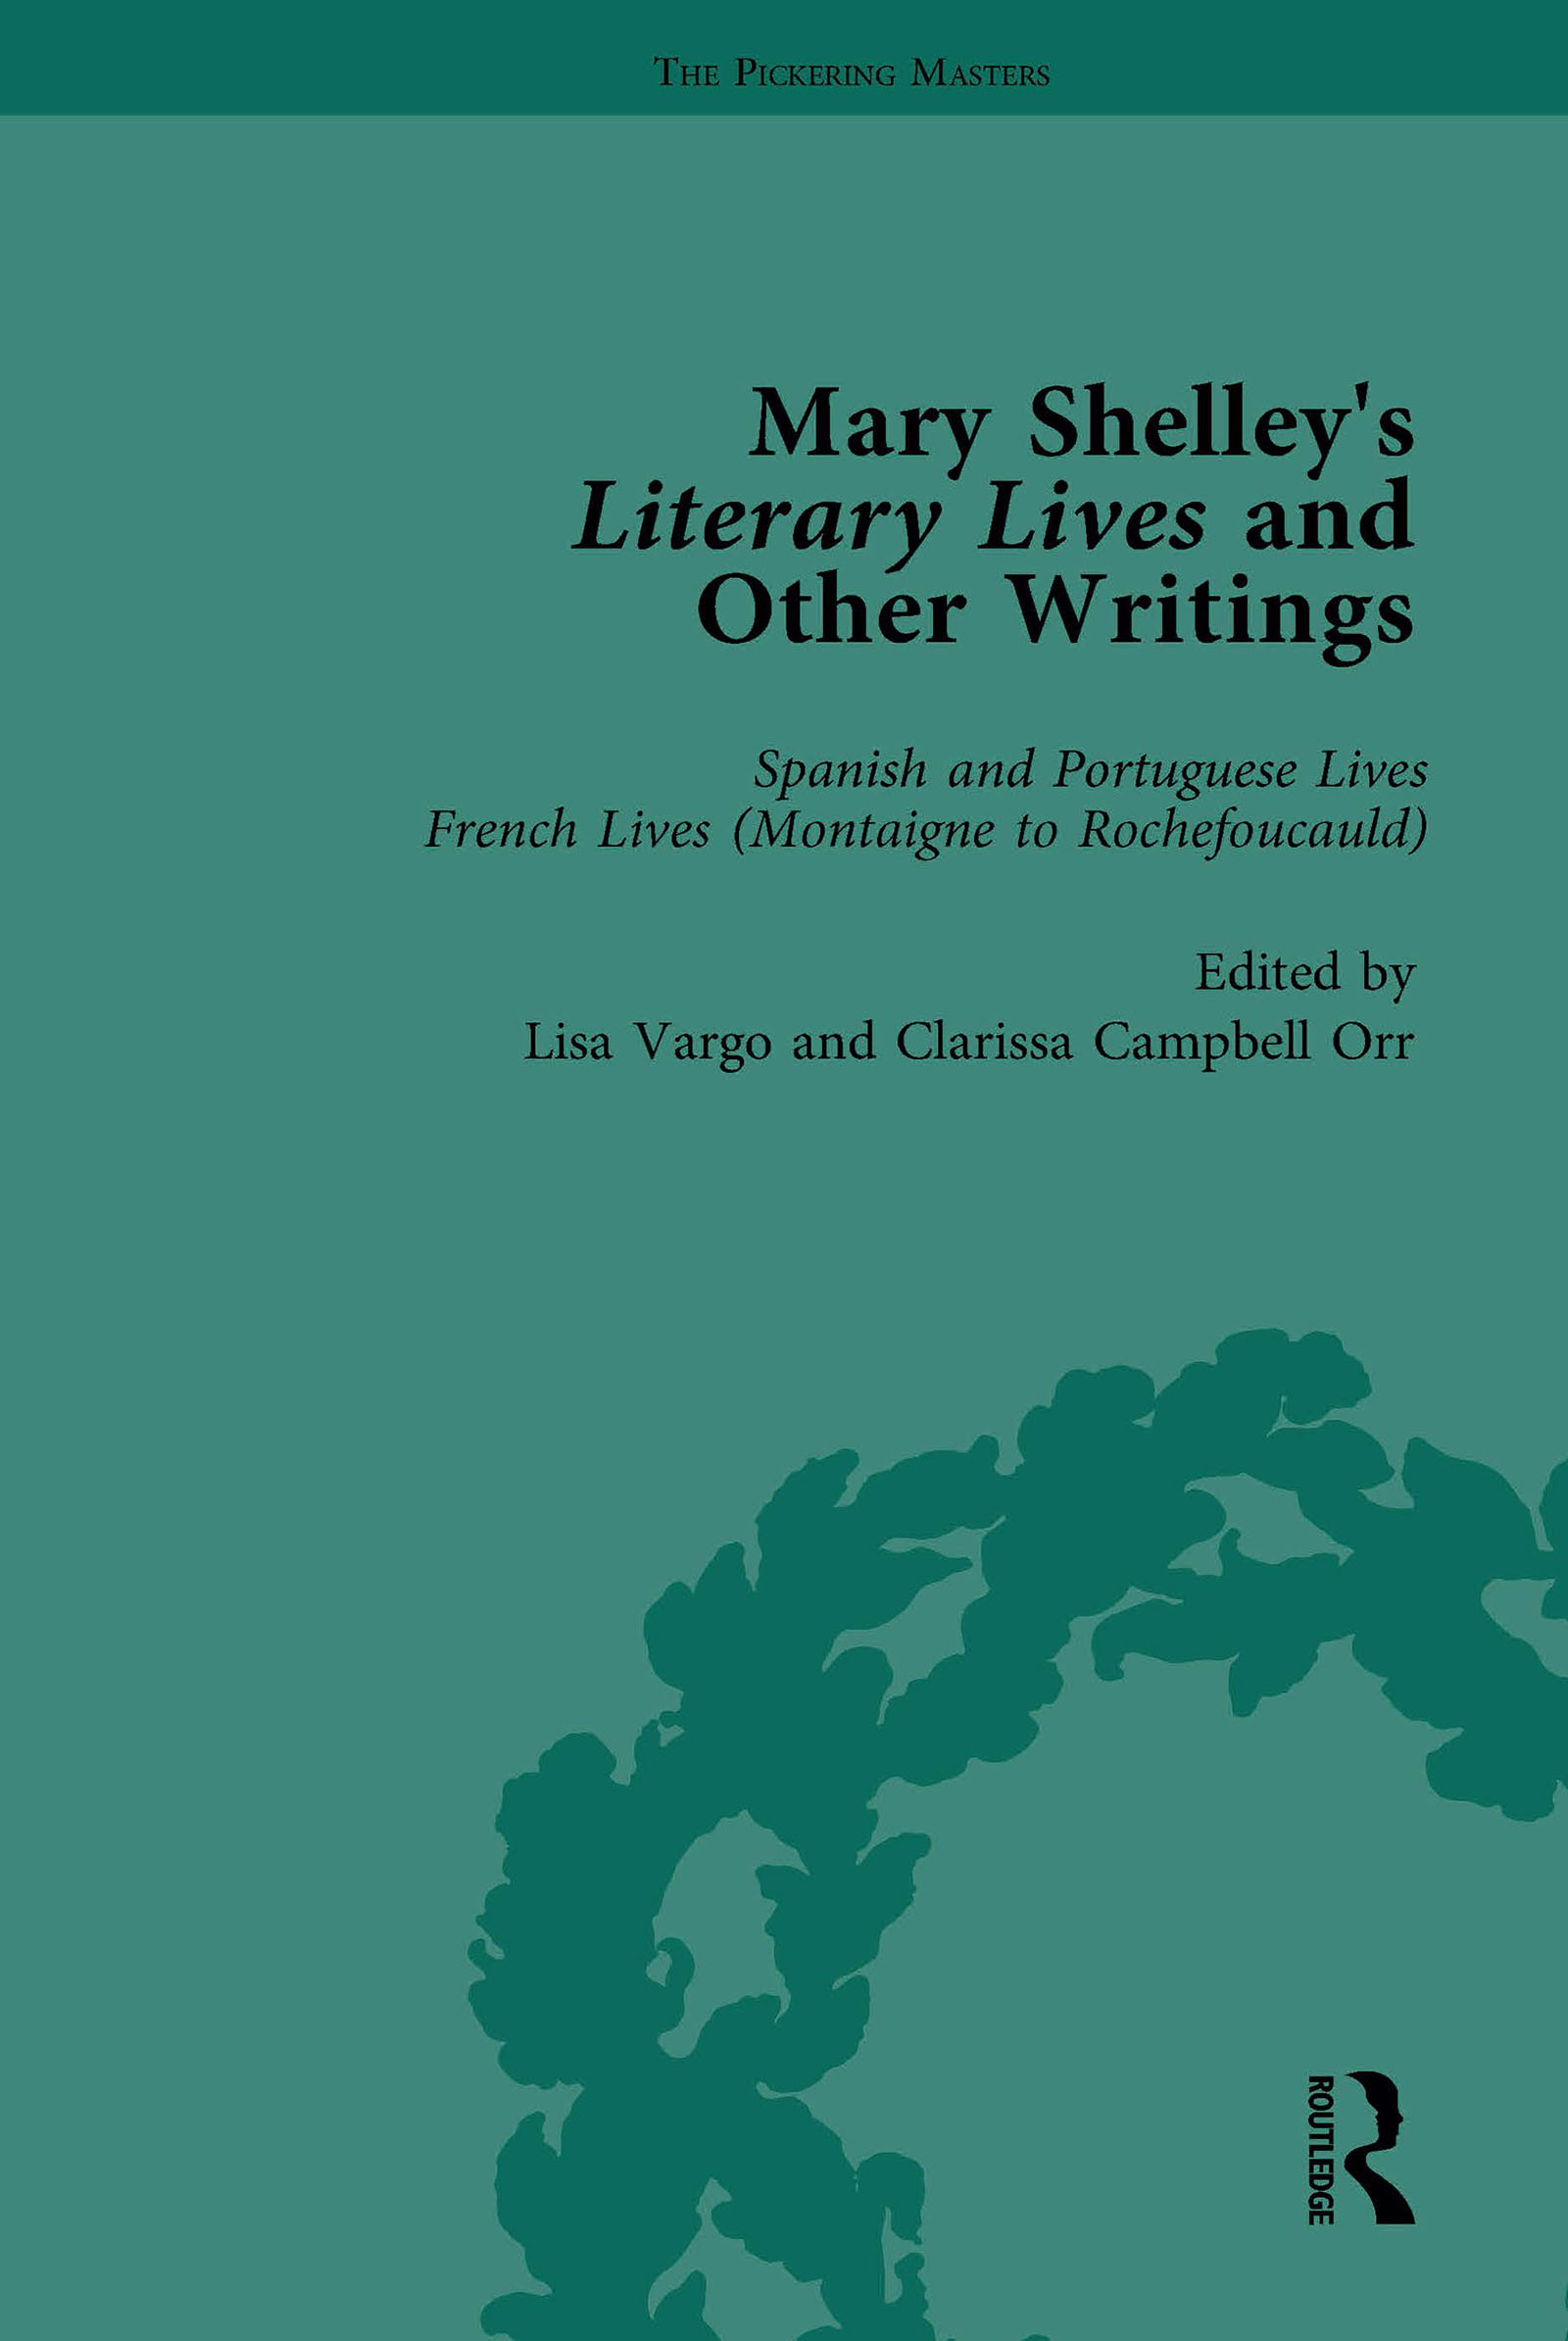 Mary Shelley's Literary Lives and Other Writings, Volume 2